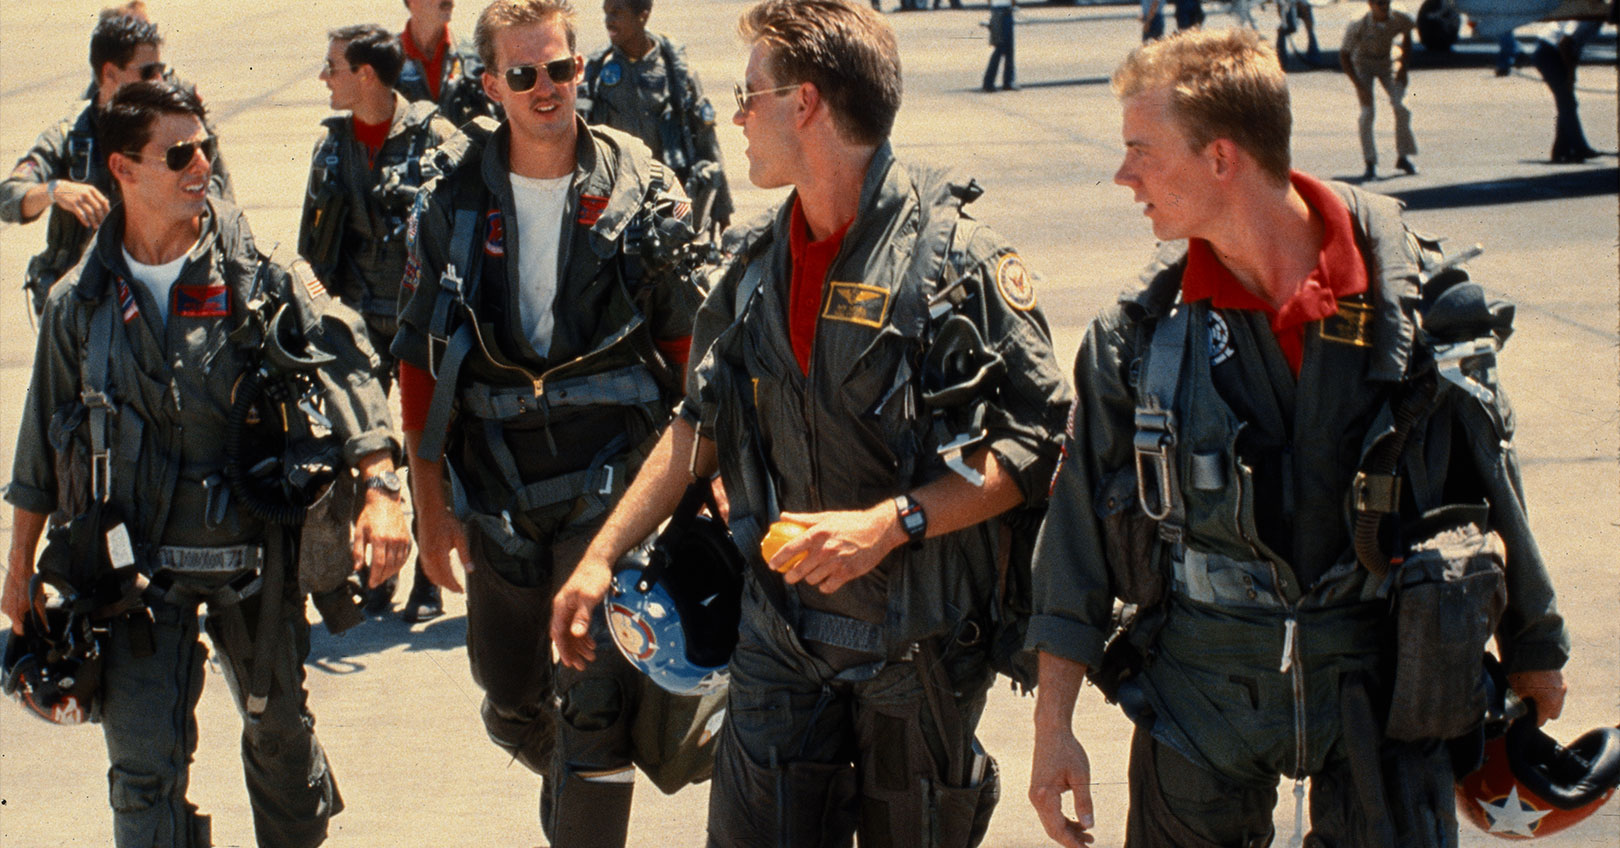 Top Gun - Tom Cruise, Anthony Edwards, Val Kilmer, and Rick Rossovich